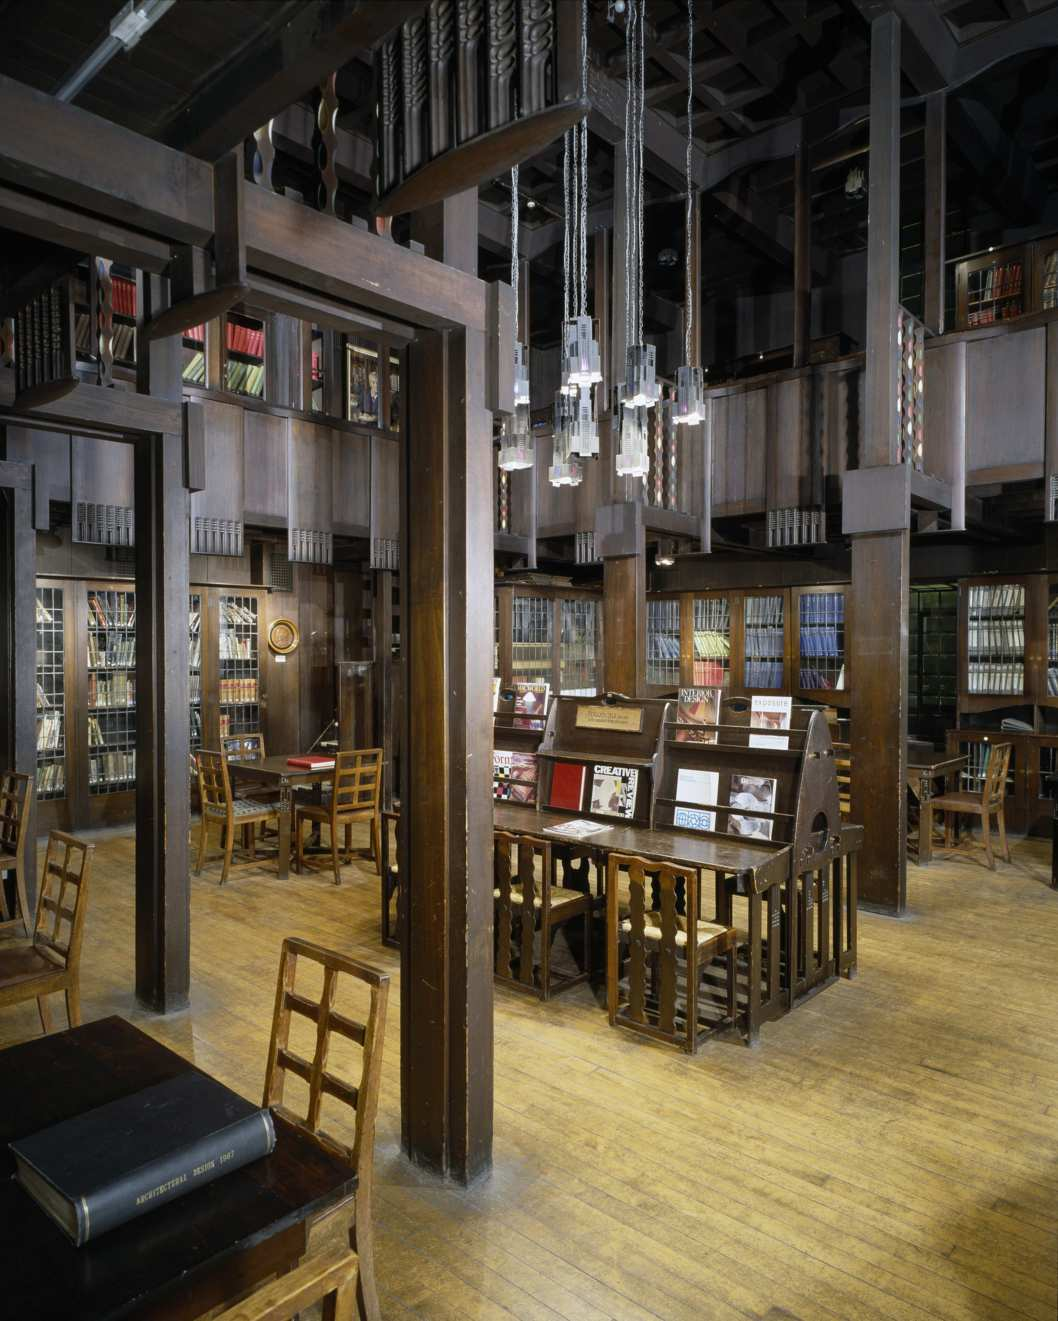 Glasgow School of Art, Scotland. The Library, 1907-1909. Architect: Charles Rennie Mackintosh.